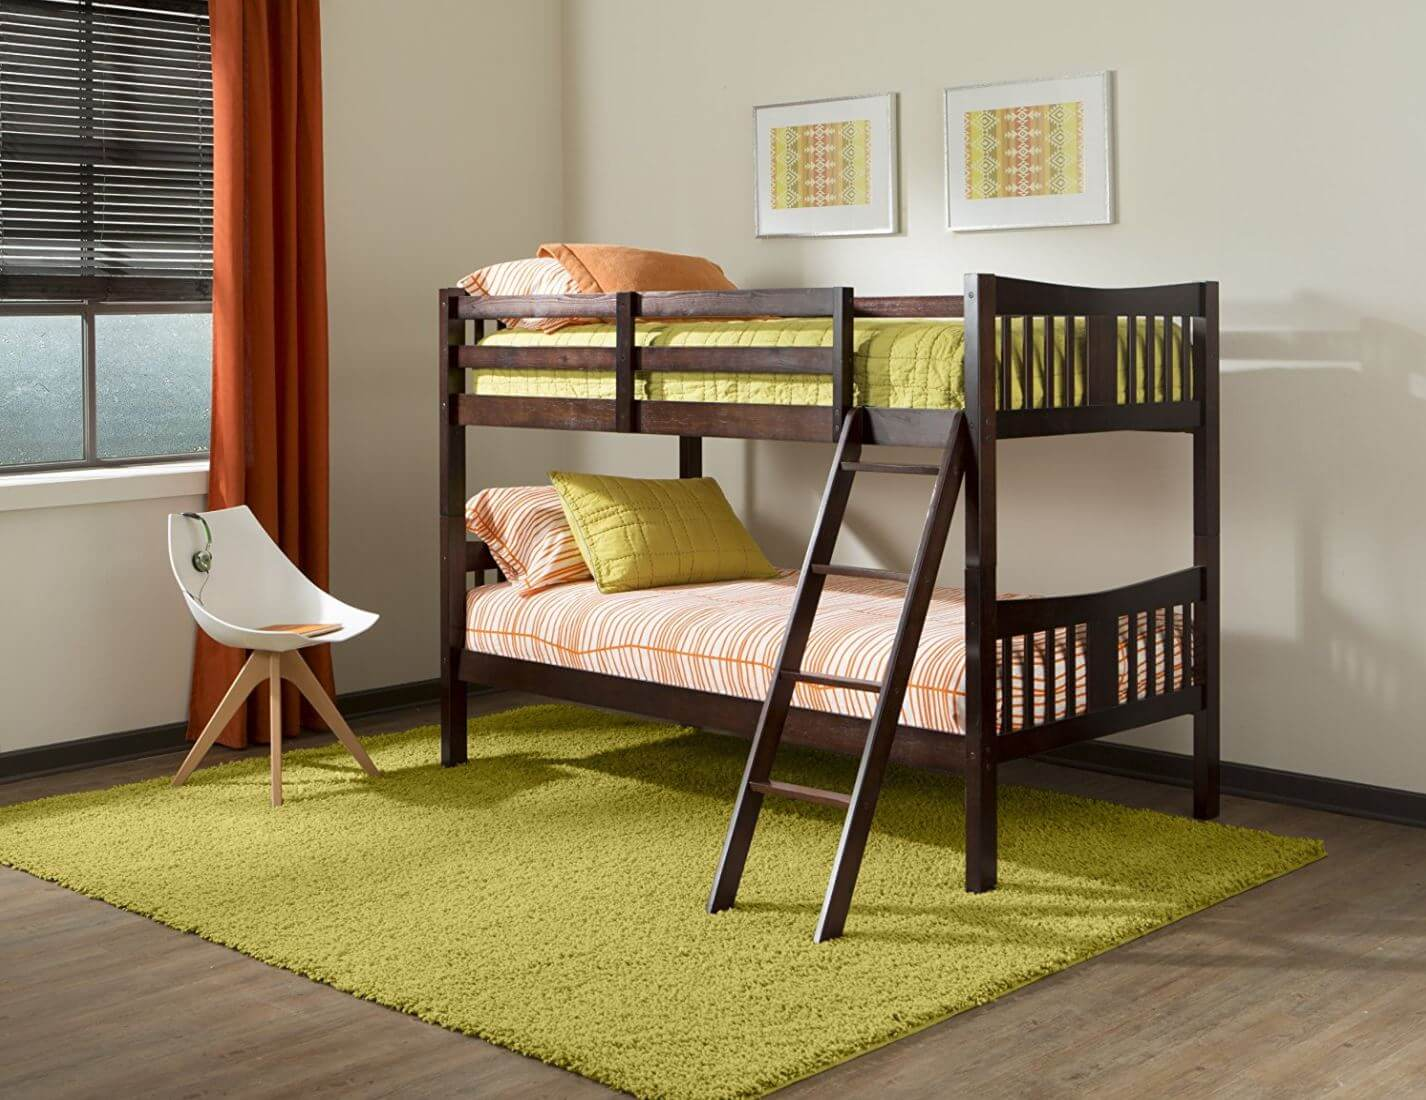 affordable bunk beds for kids wood